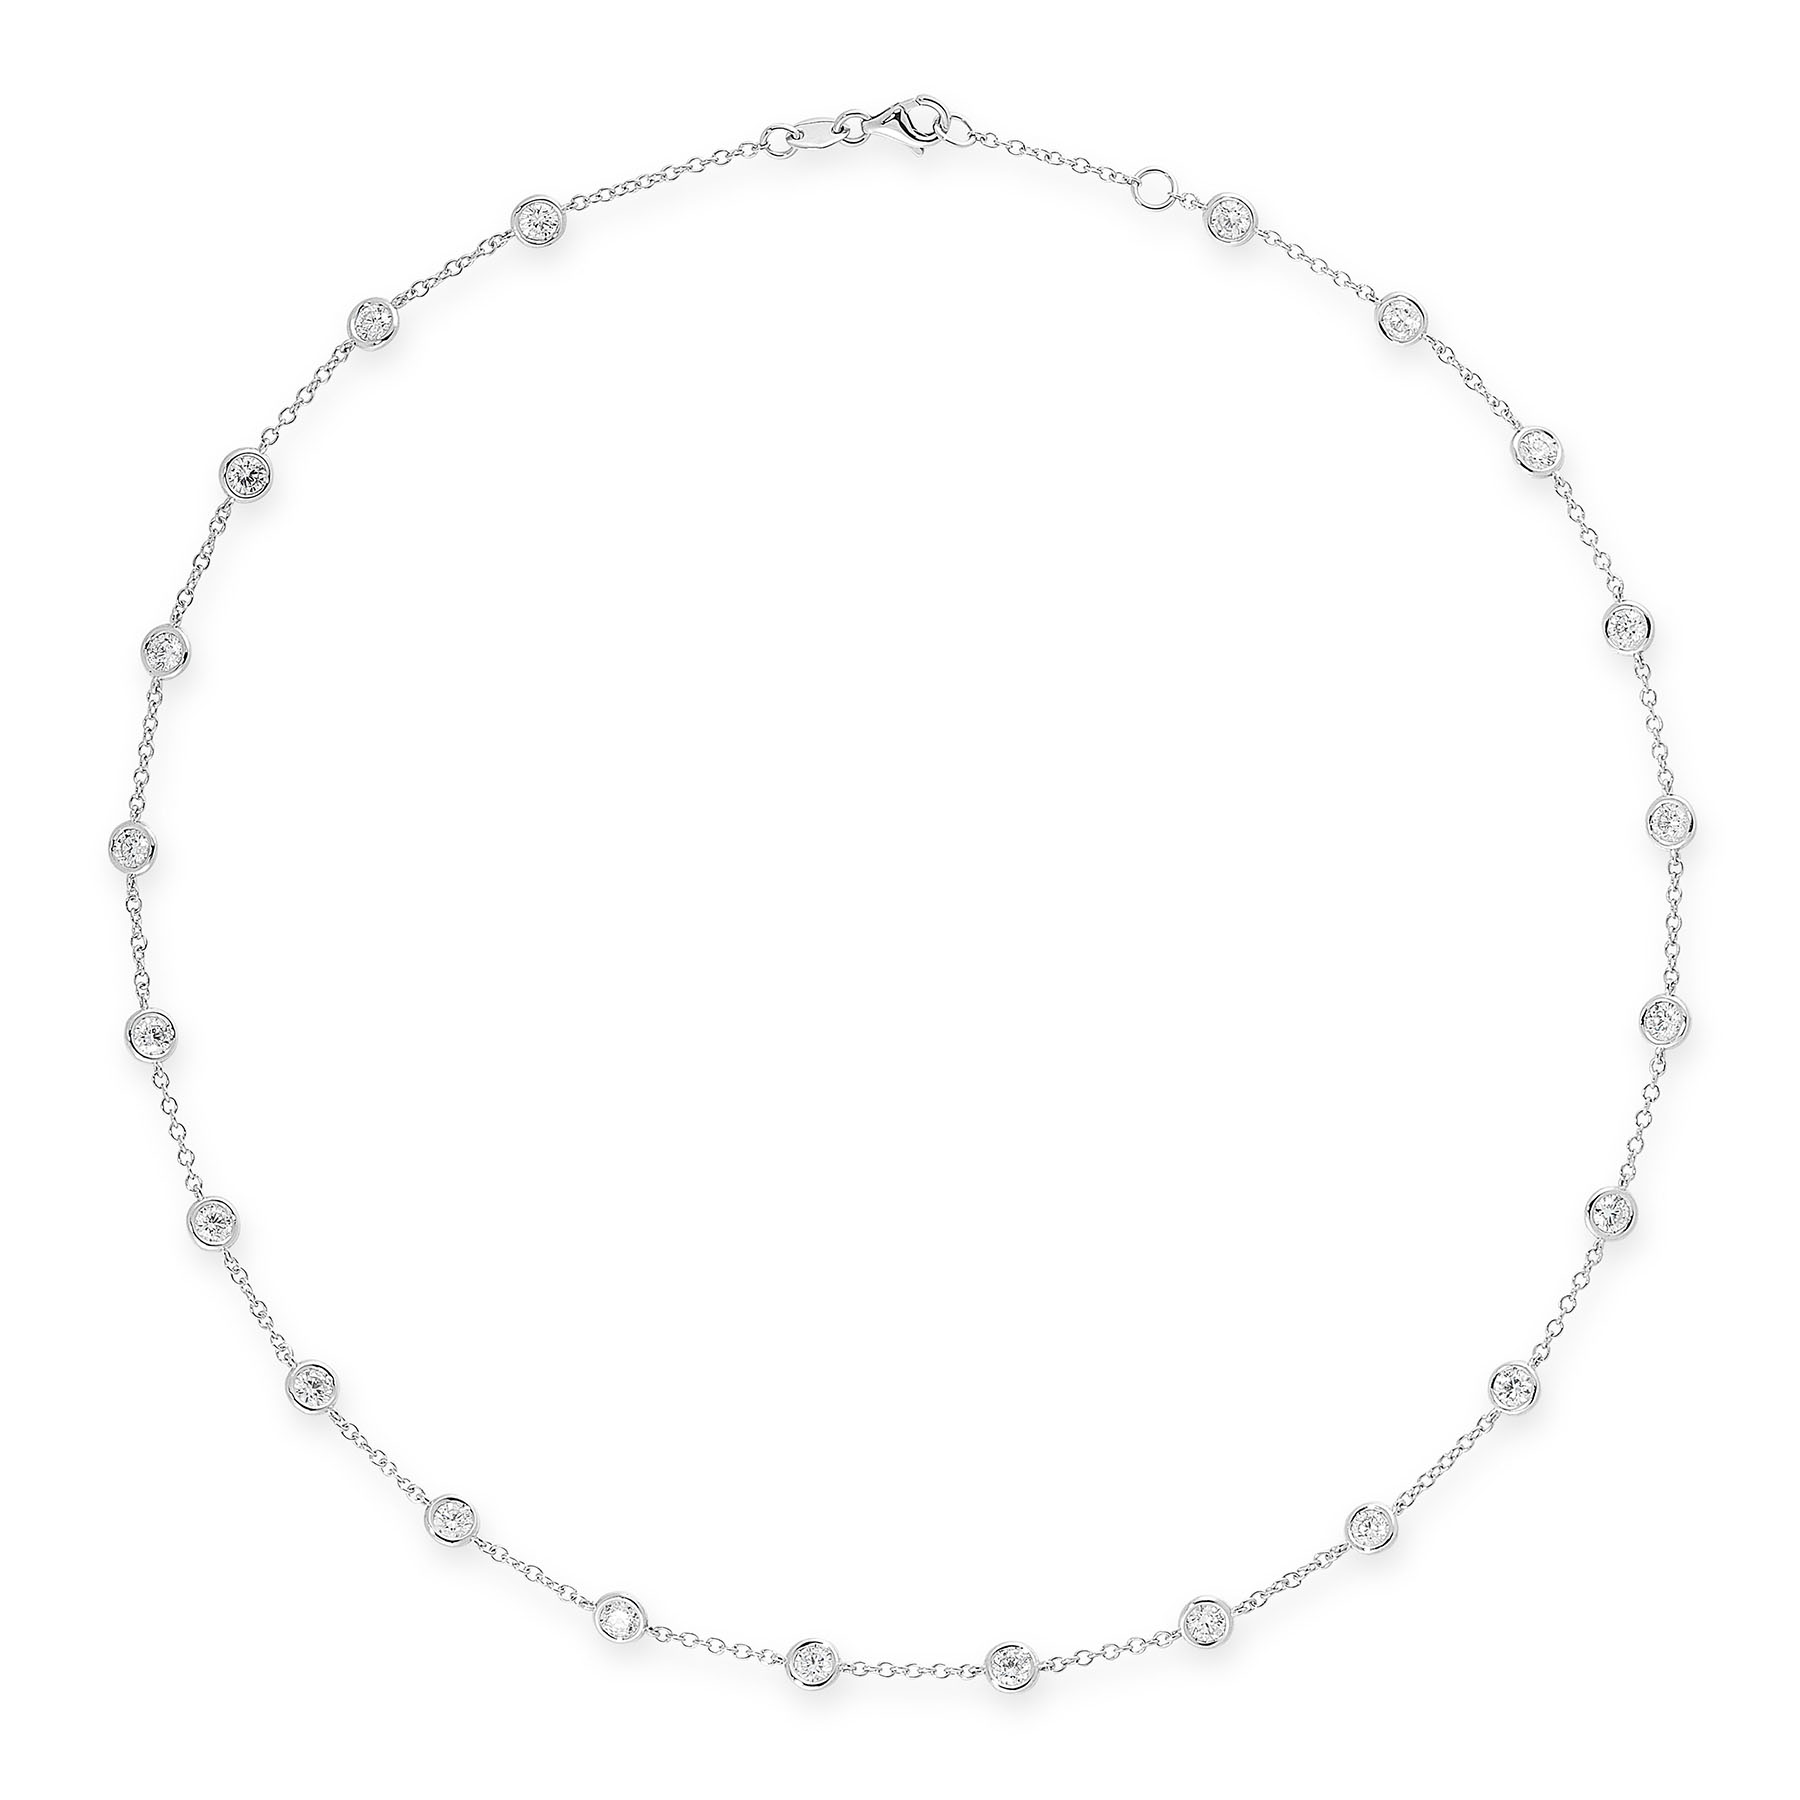 A DIAMOND NECKLACE in 18ct white gold, in the manner of Tiffany & Co Diamond by the Yard, set with